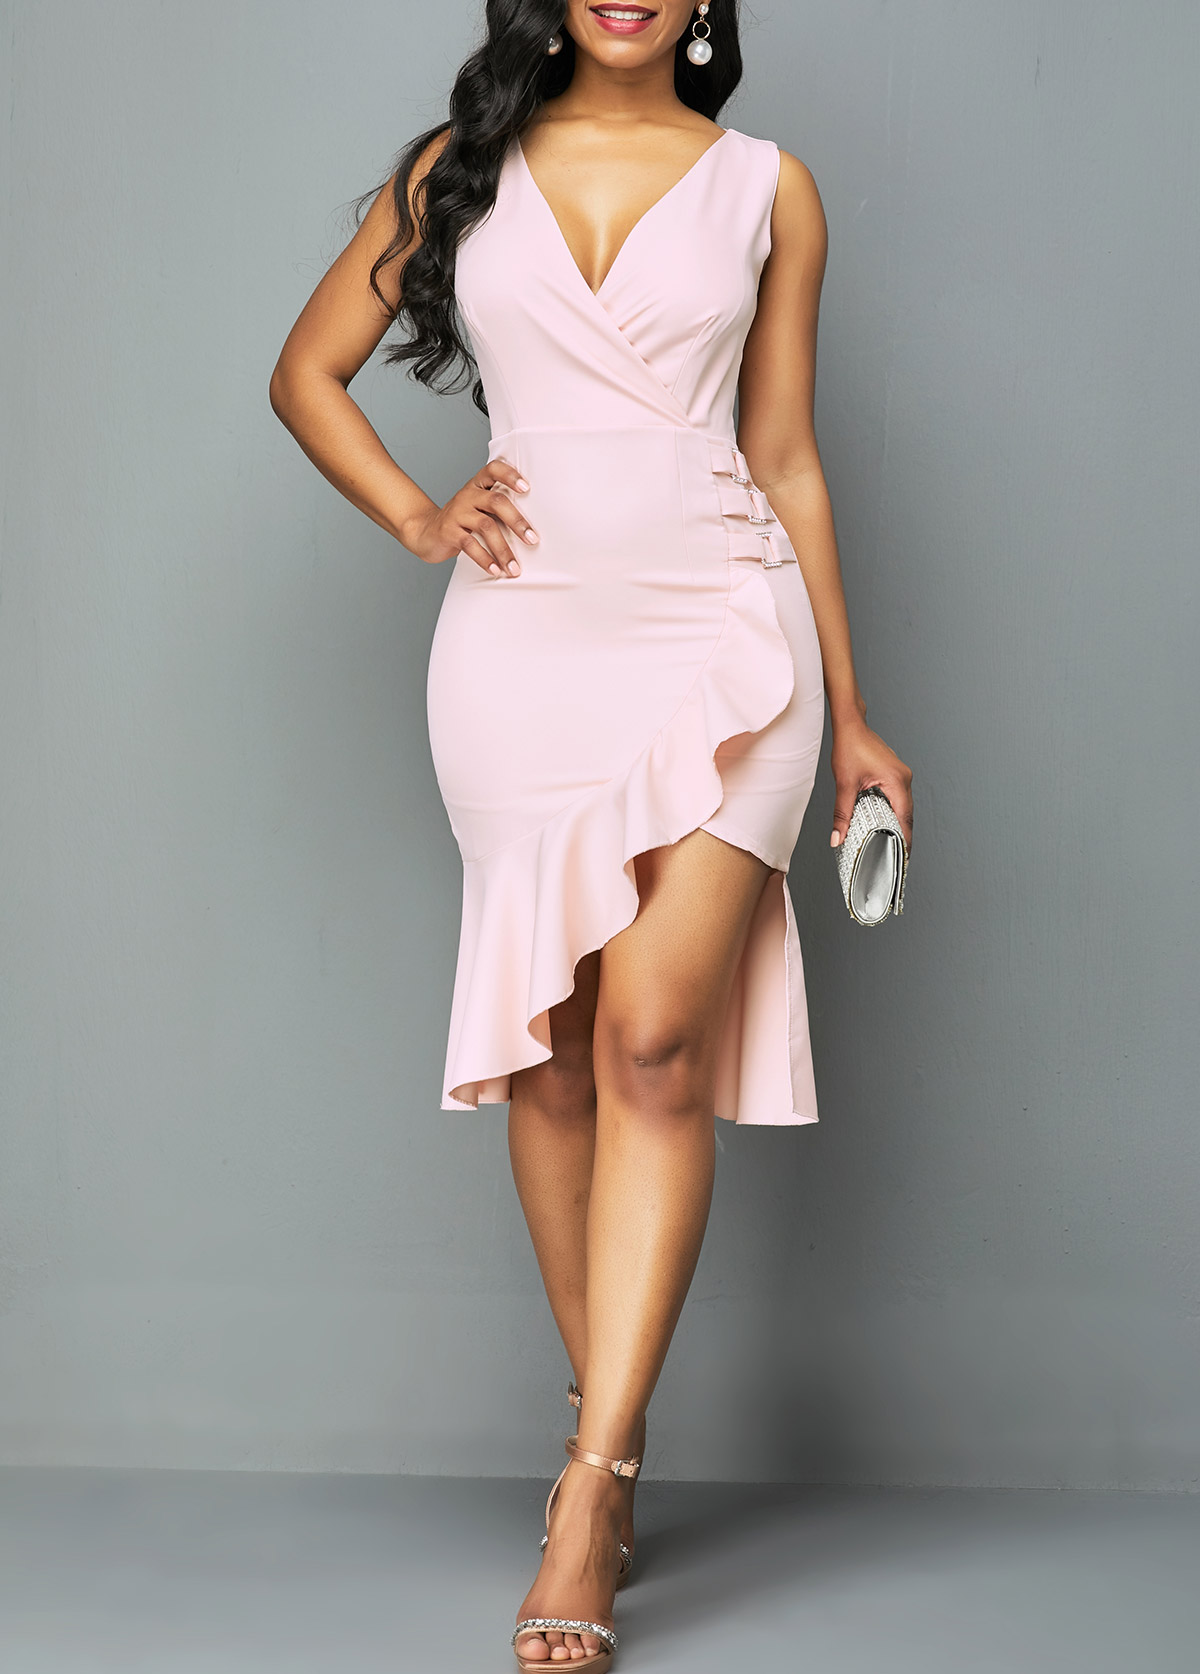 Ruffle Trim Plunging Neck Back Zipper Dress